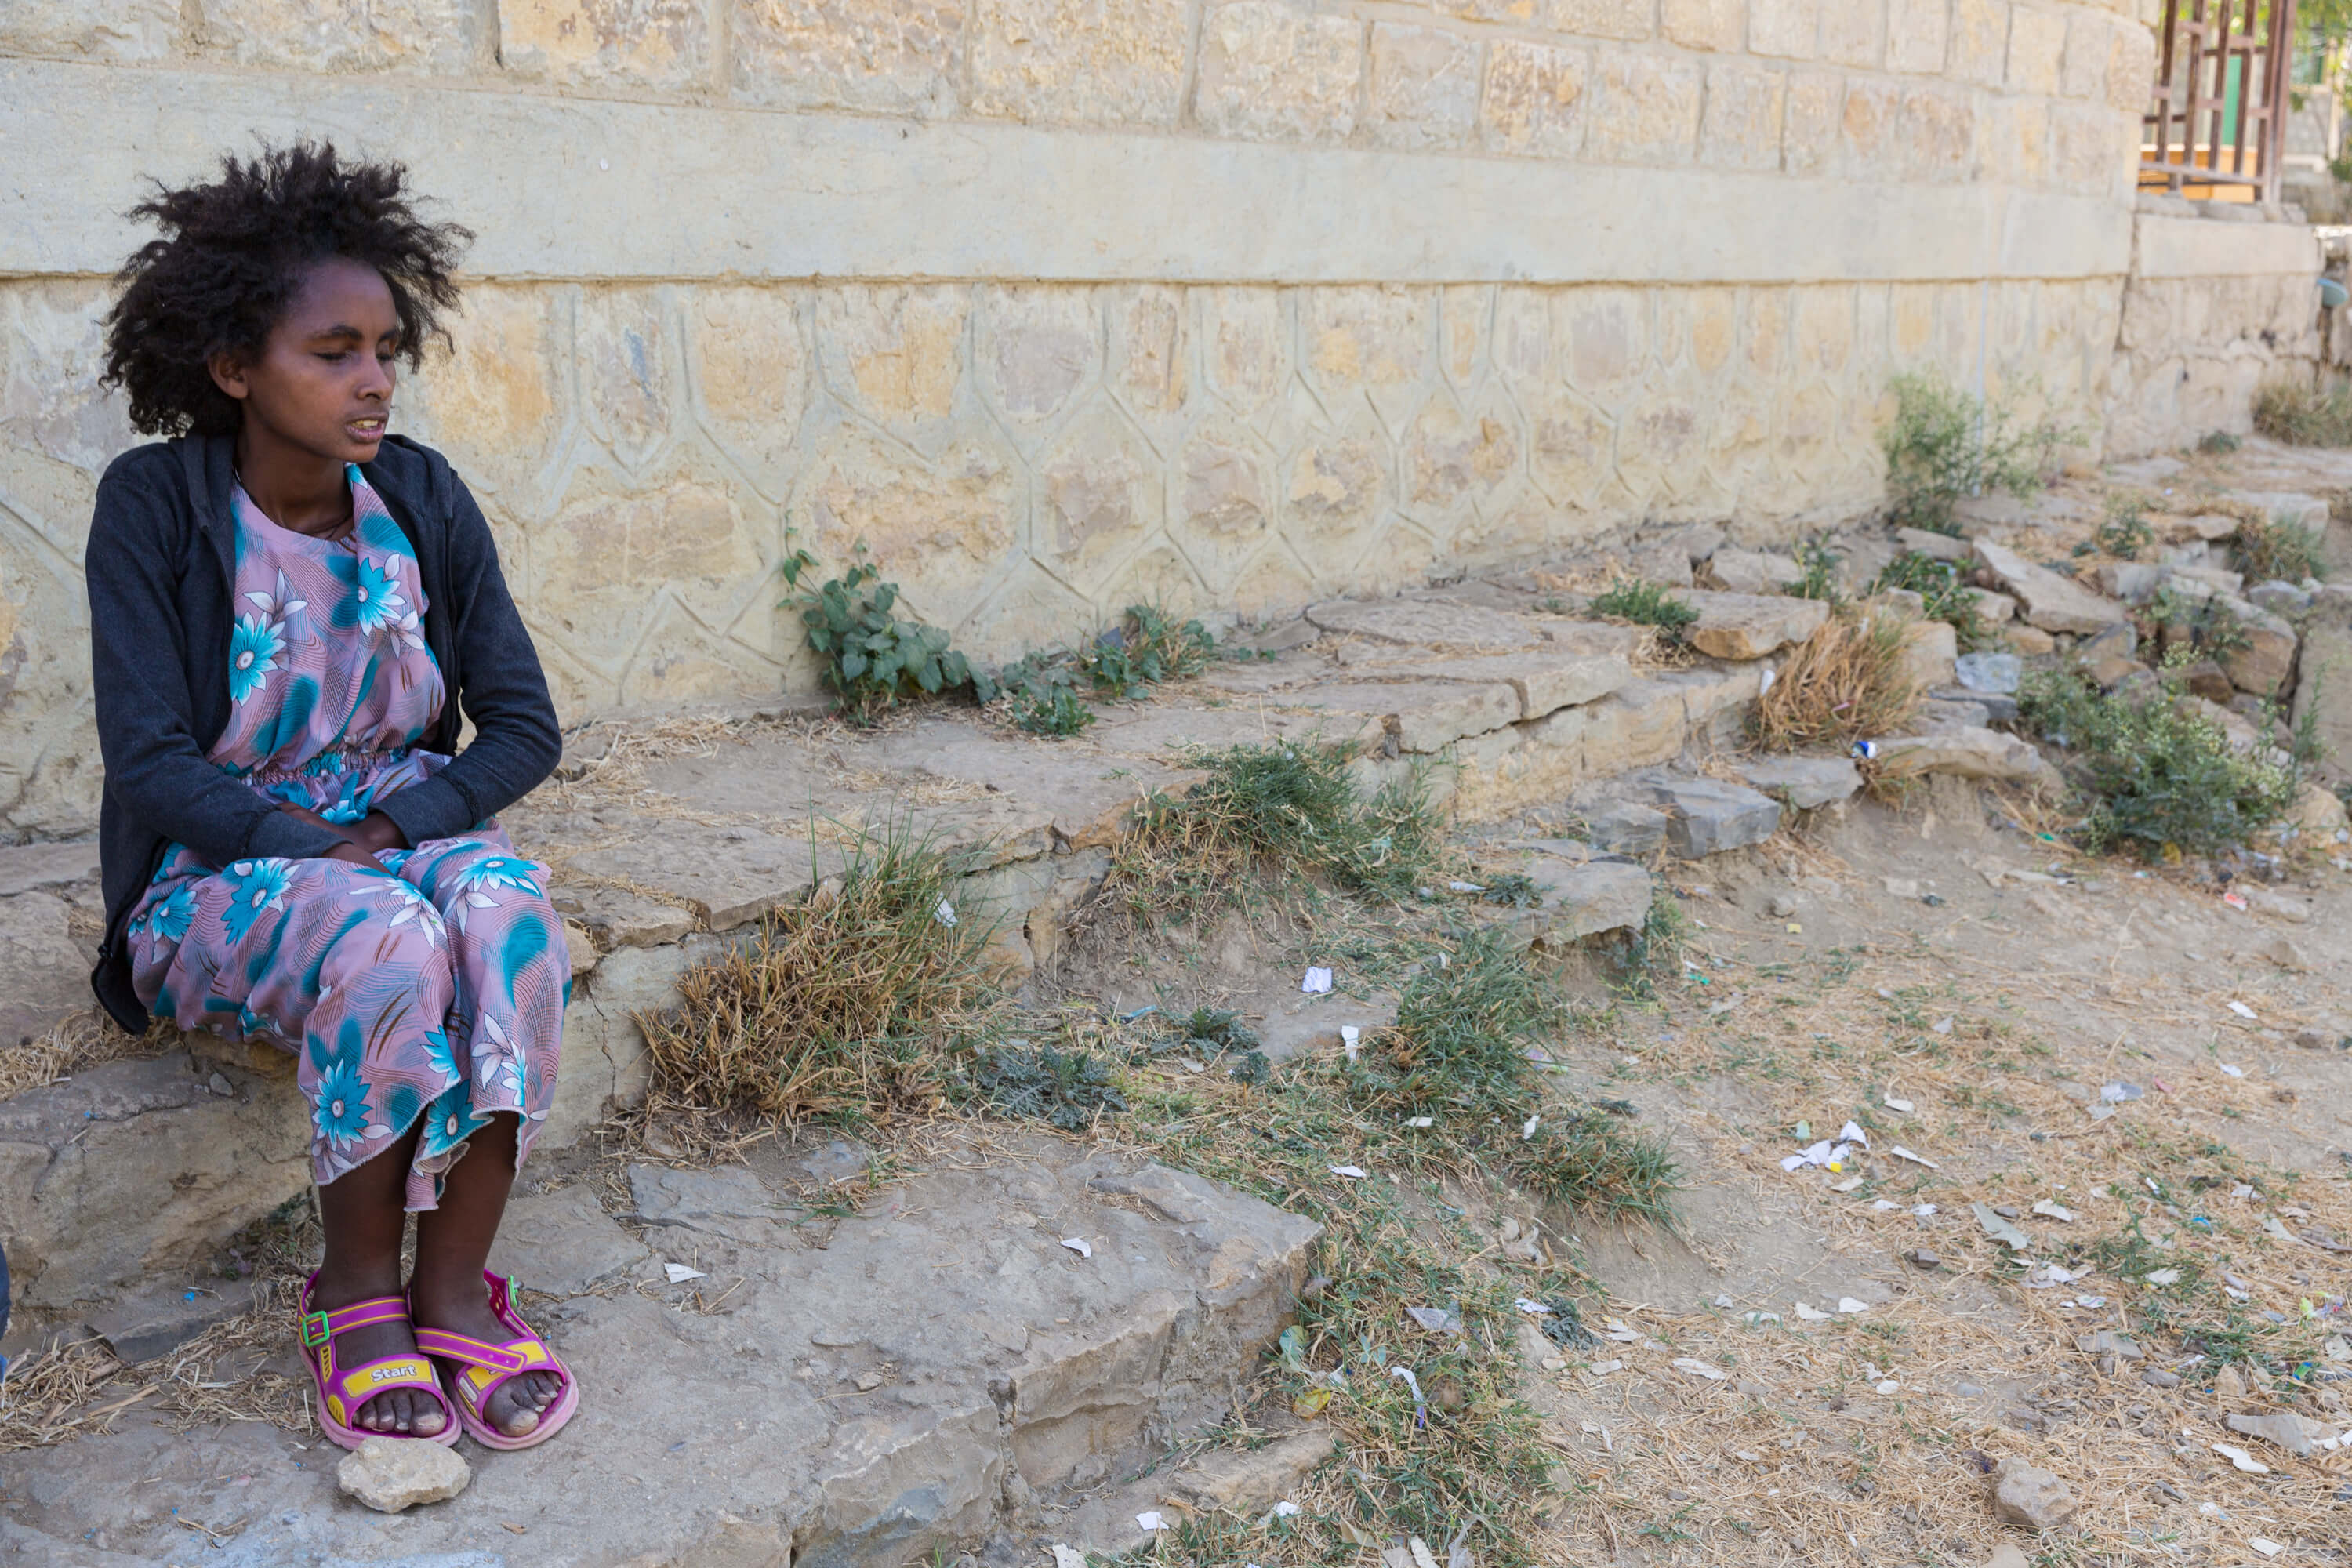 Ethiopian woman sitting alone outside on stoop